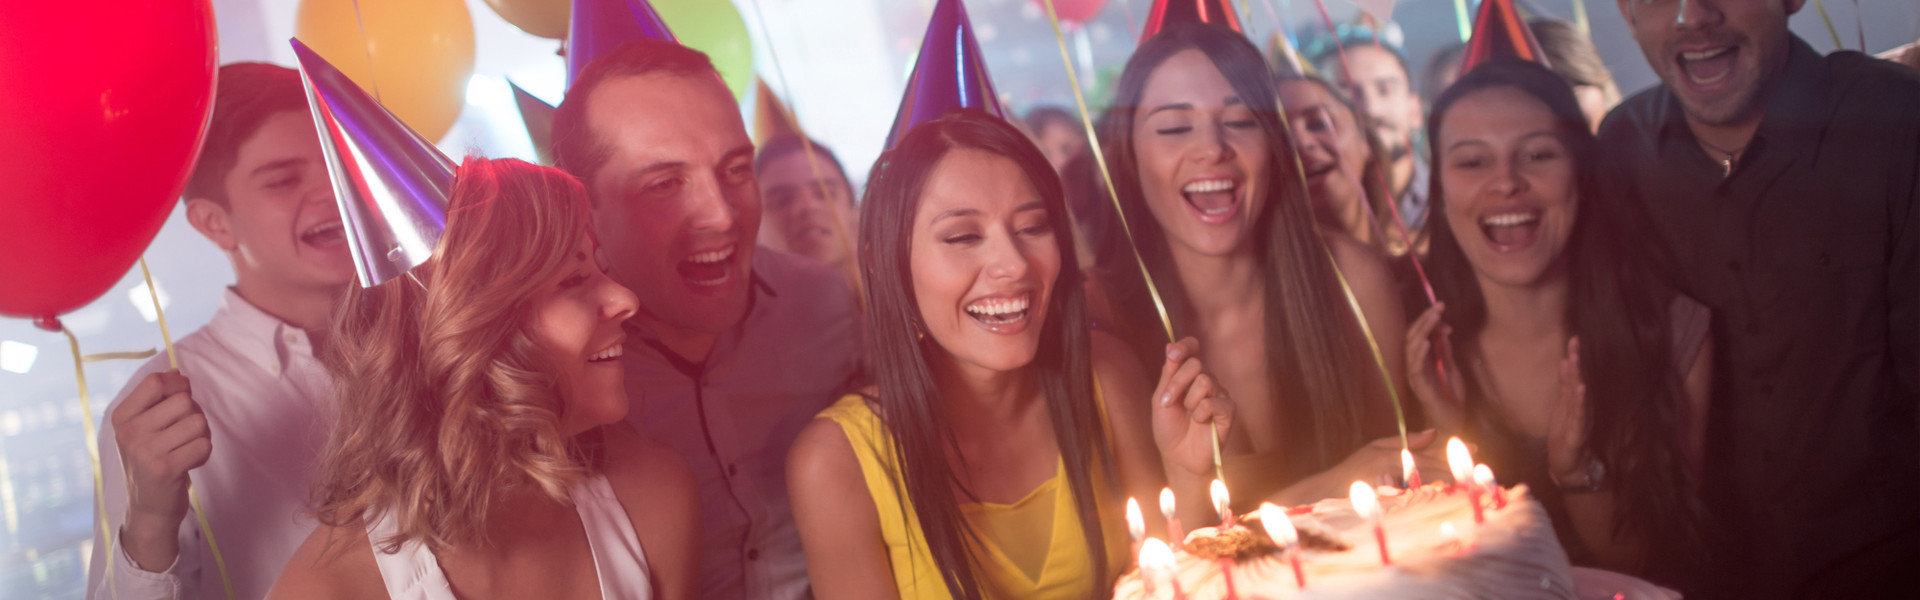 Your Birthday Party Venue For NYC | Birthday Celebration